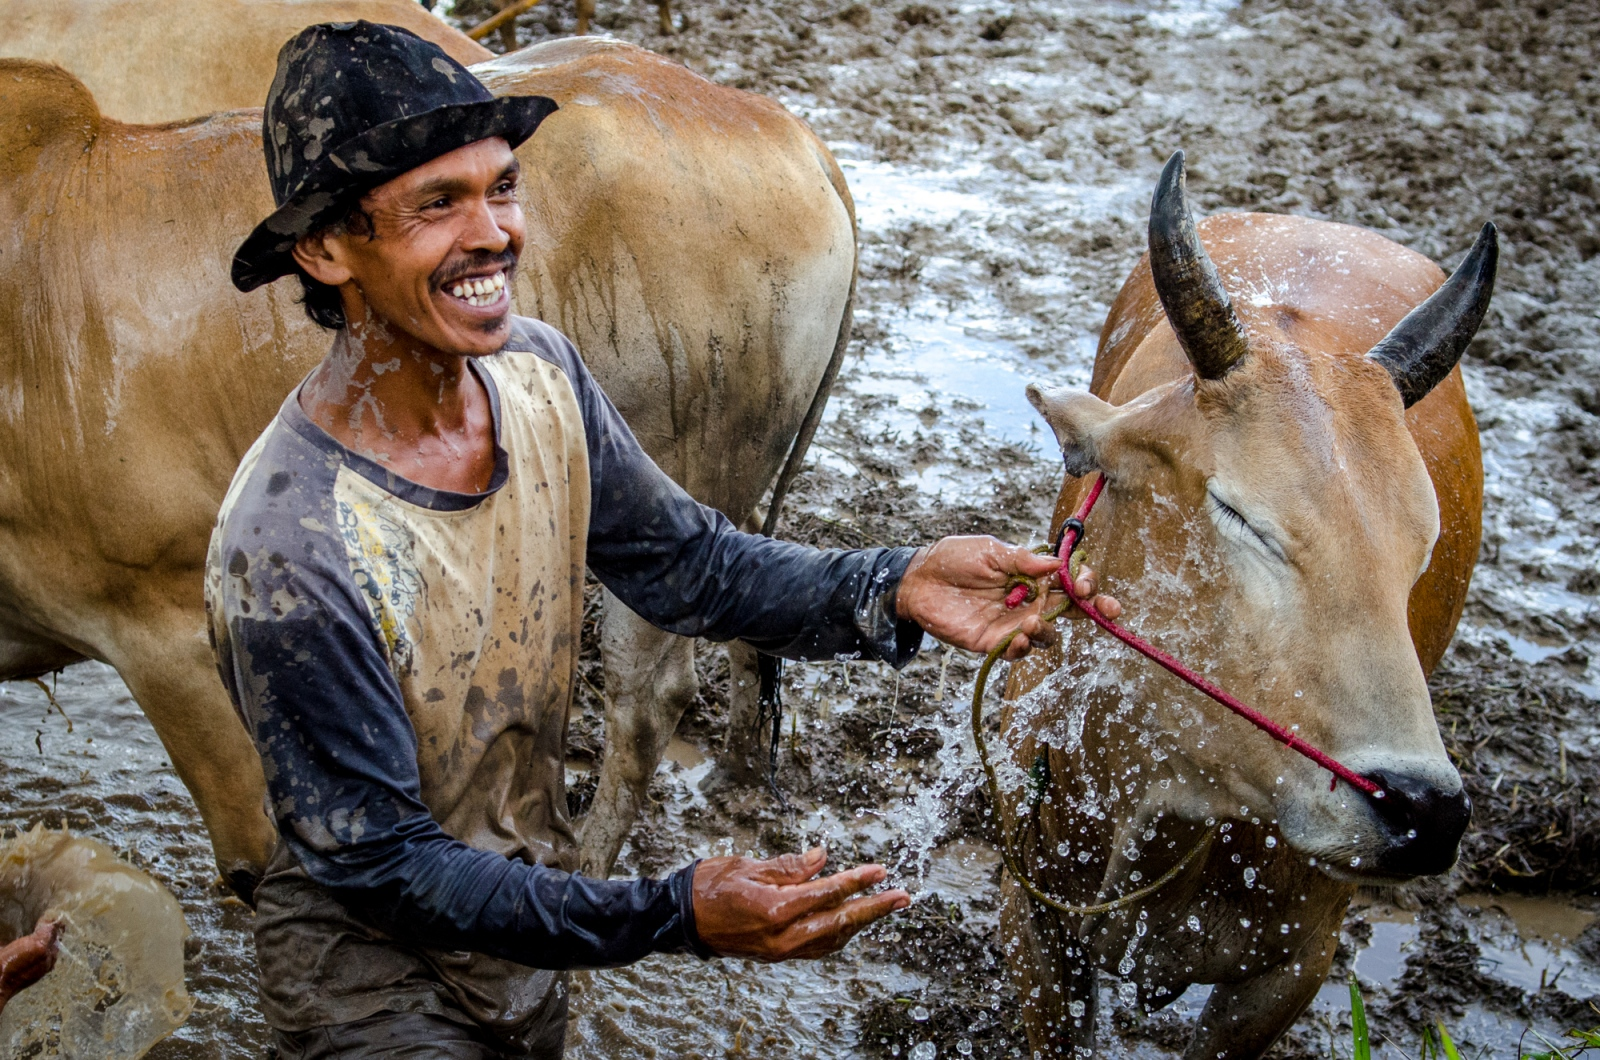 The farmers and jockeys alike take great care of the bulls and cows during Pacu Jawi, the West Sumatran bull races. After their runs down the rice paddy, the cattle are caked with mud, but briskly herded over to the freshwater streaming down from Mount Marapi. Normally used to irrigate the agricultural property, it acts as a perfect bathing station during the muddy event.